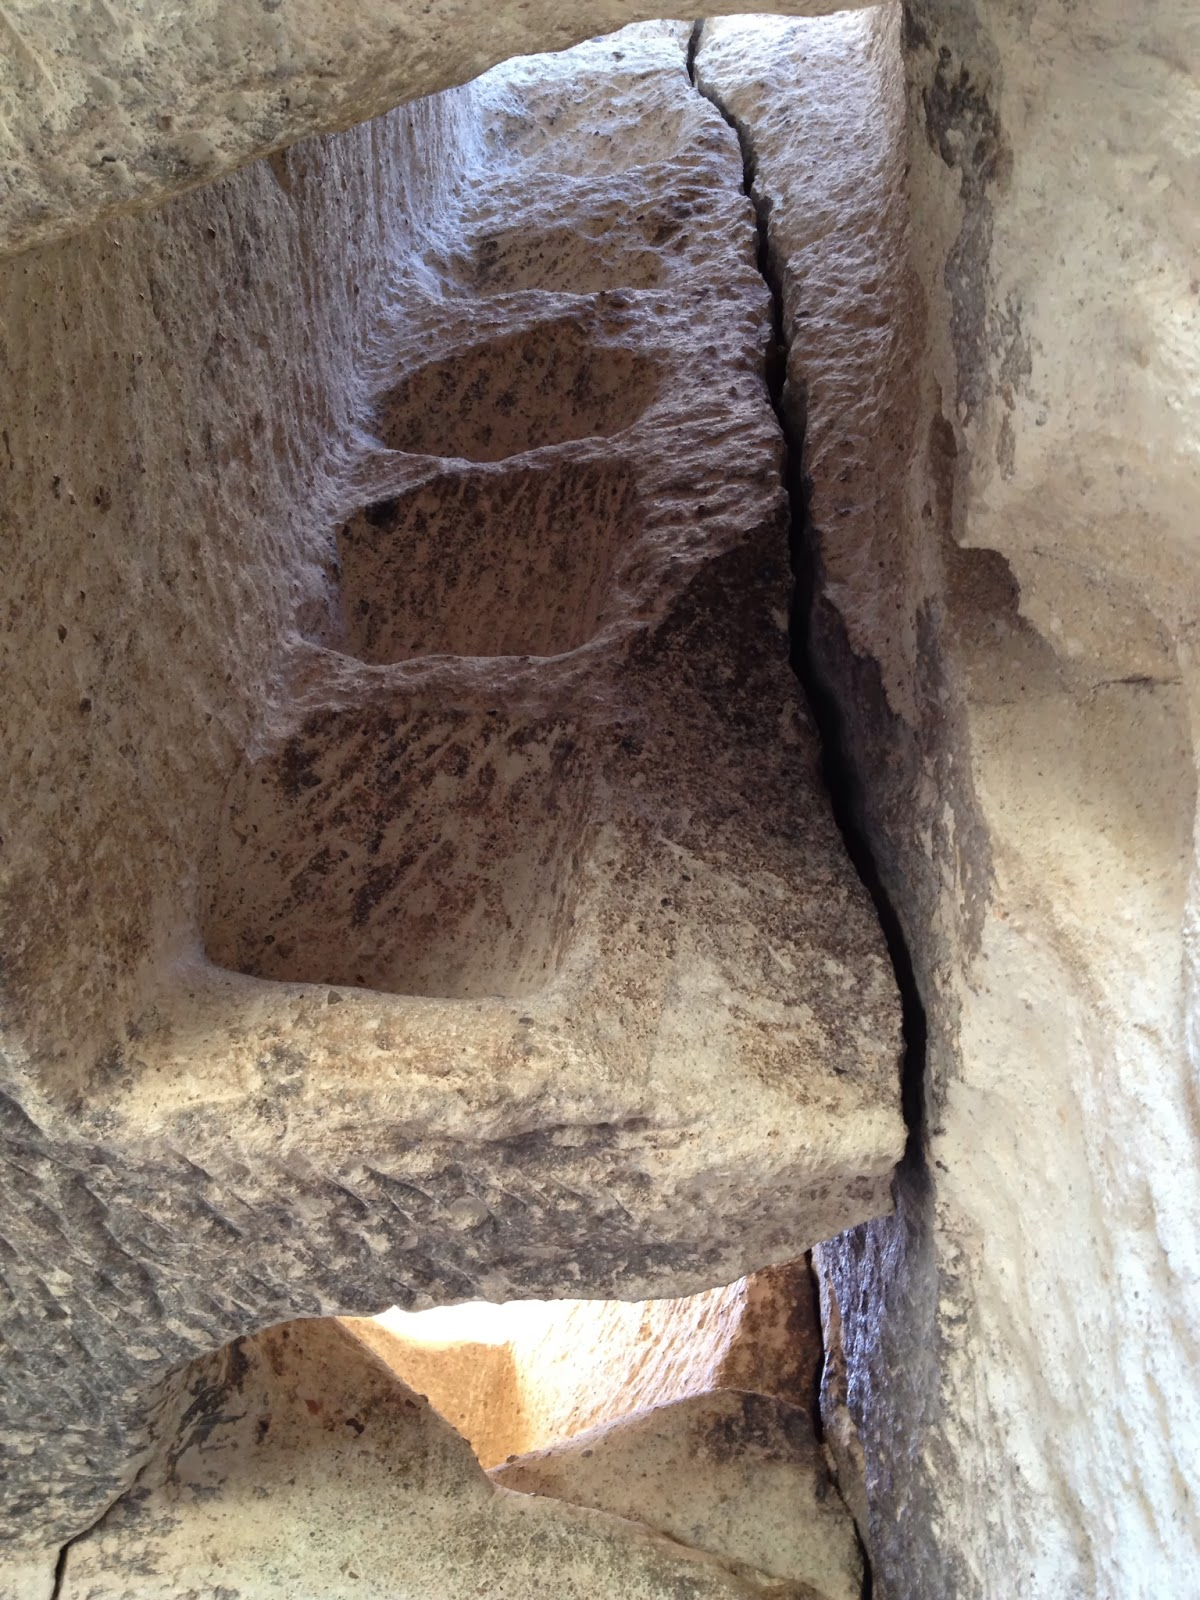 Cappadocia - Imagine climbing up these stairs! No thank you.